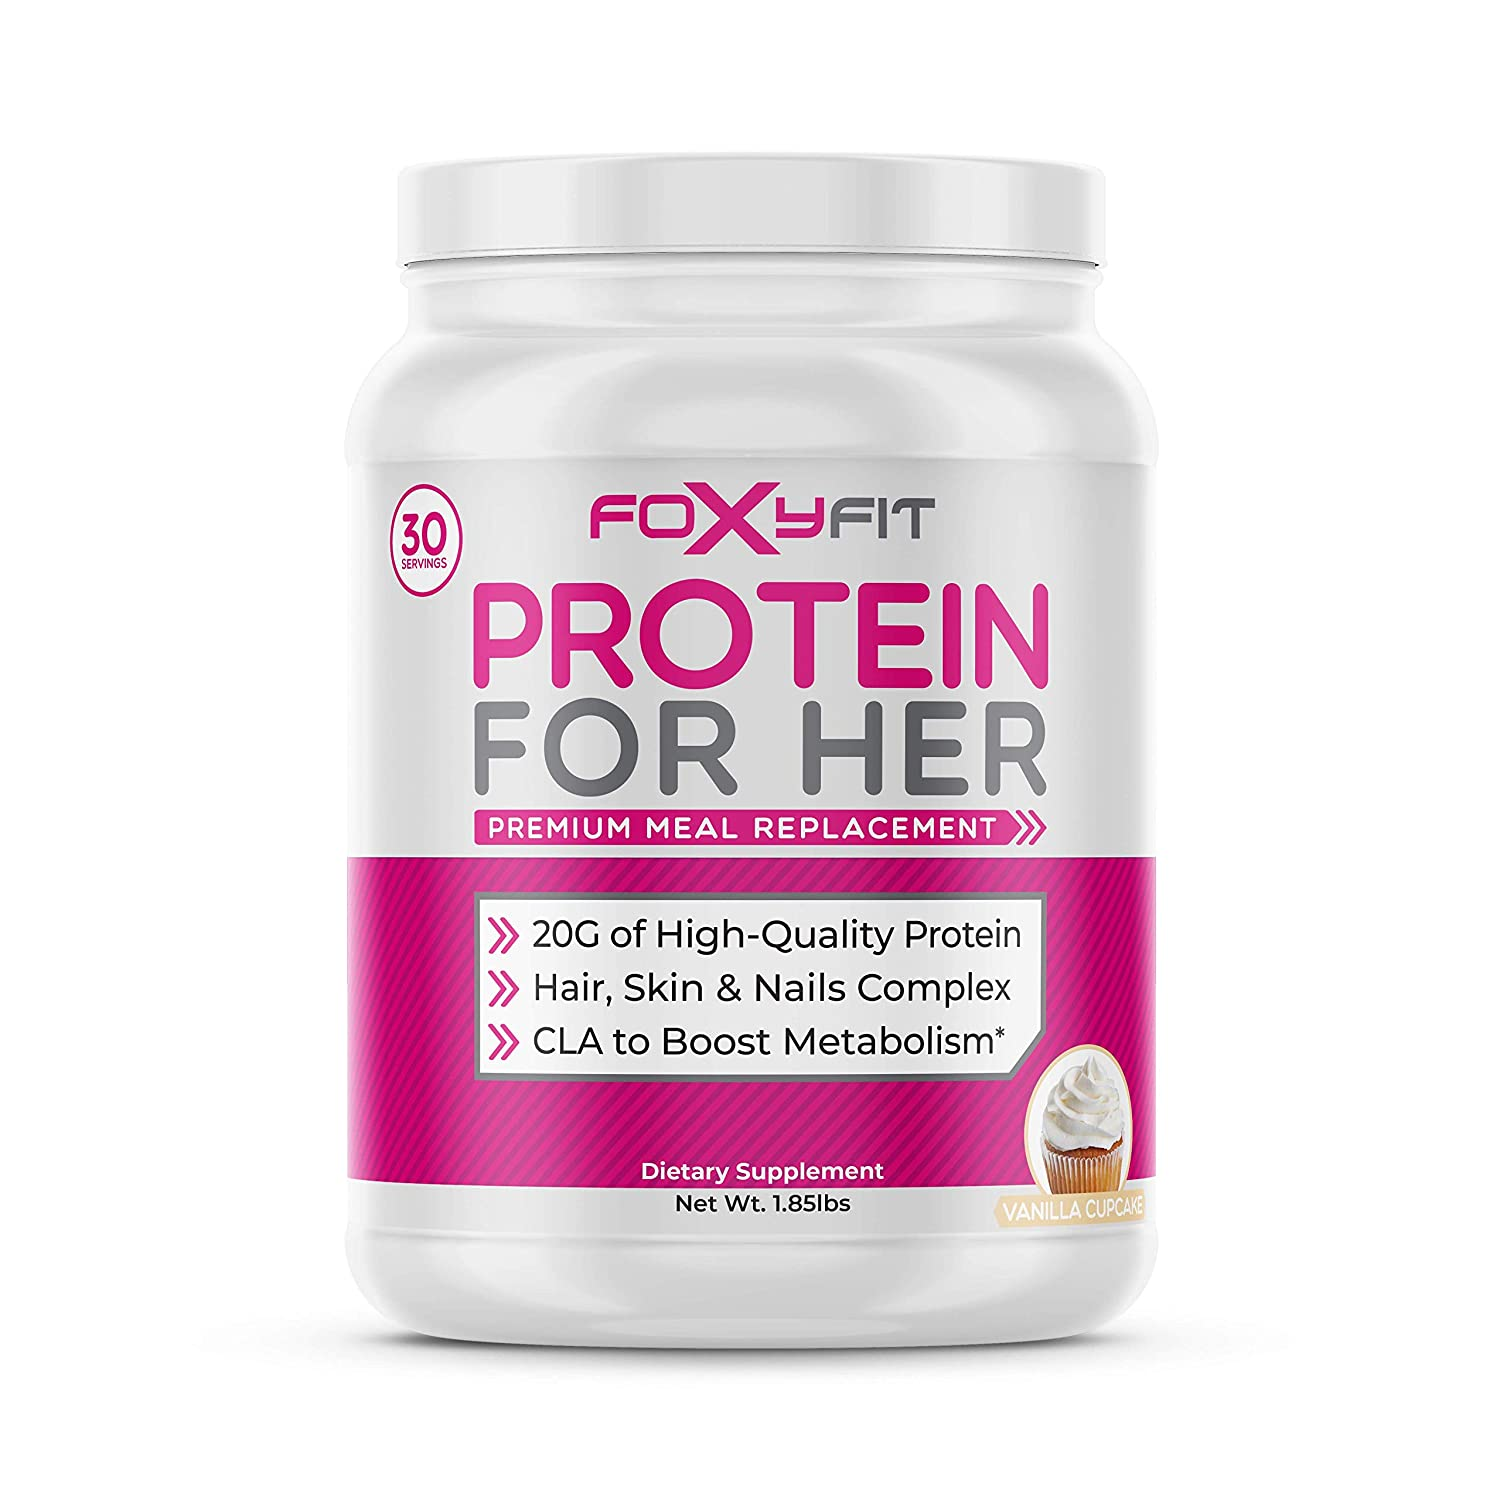 FoxyFit Protein for Her, Vanilla Cupcake Whey Protein Powder with CLA for Fat Loss and Biotin for Healthy Glow 1.85 lbs.